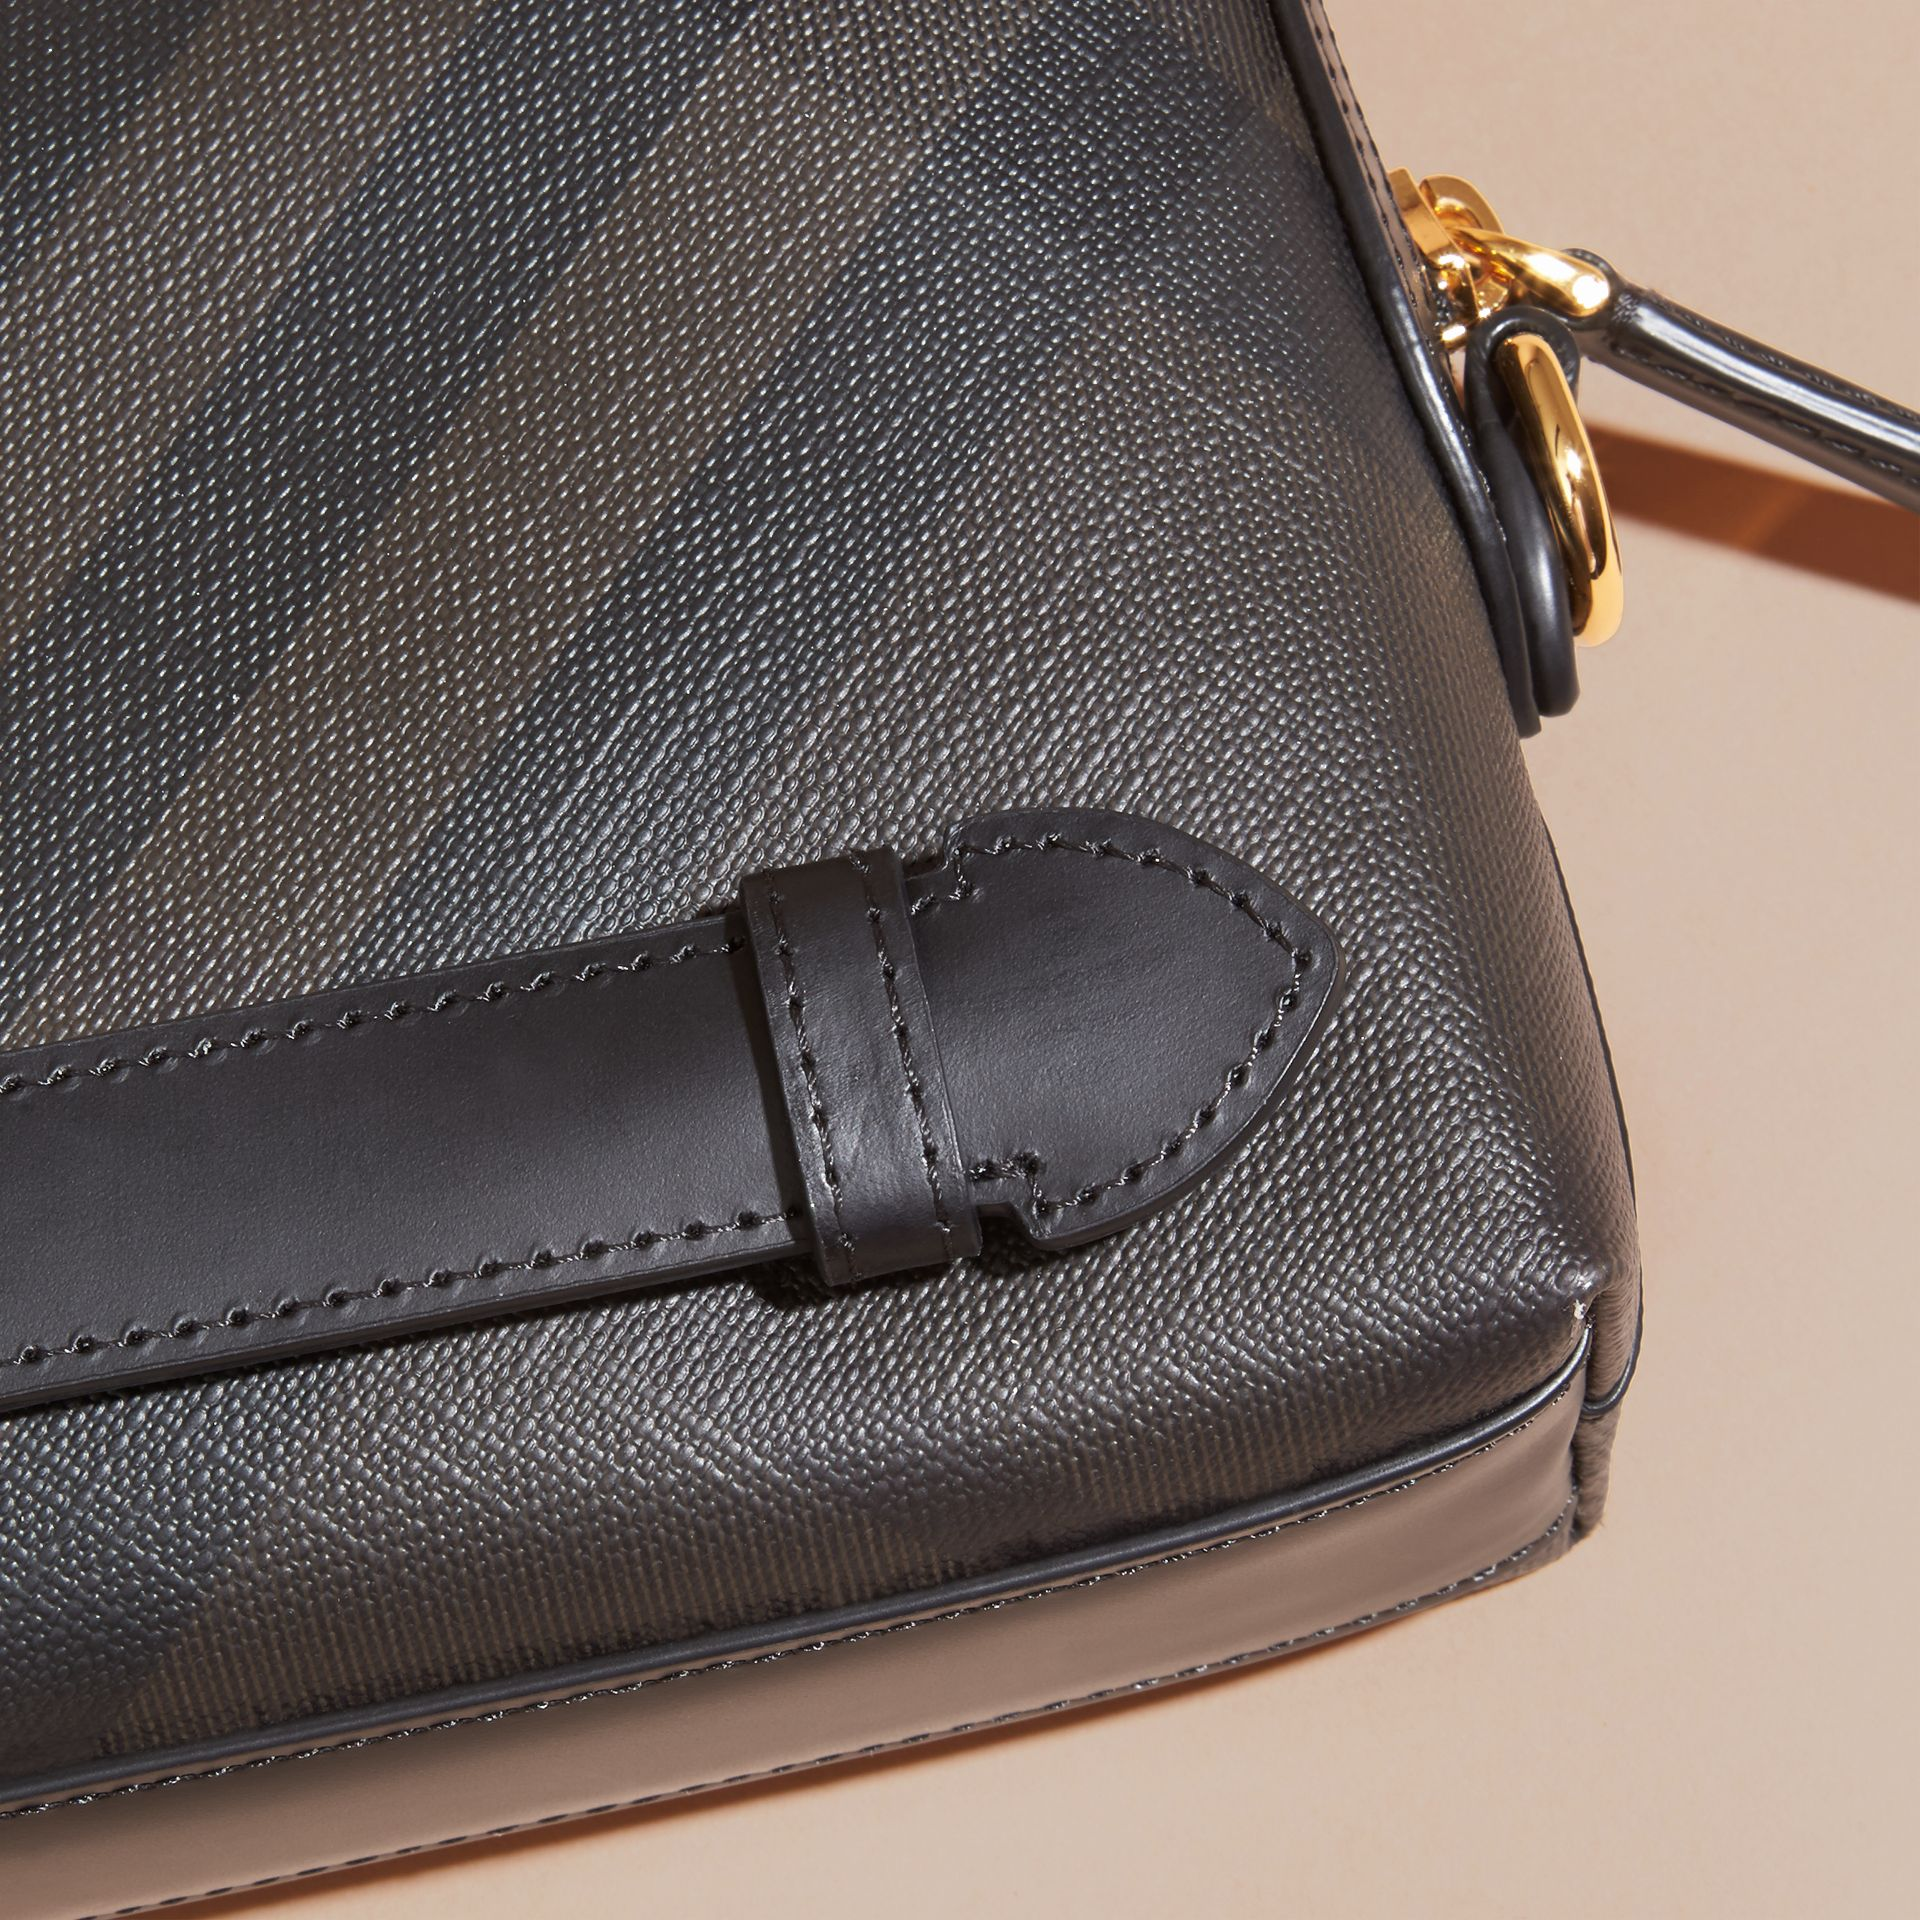 Leather-trimmed London Check Pouch Chocolate/black - gallery image 2